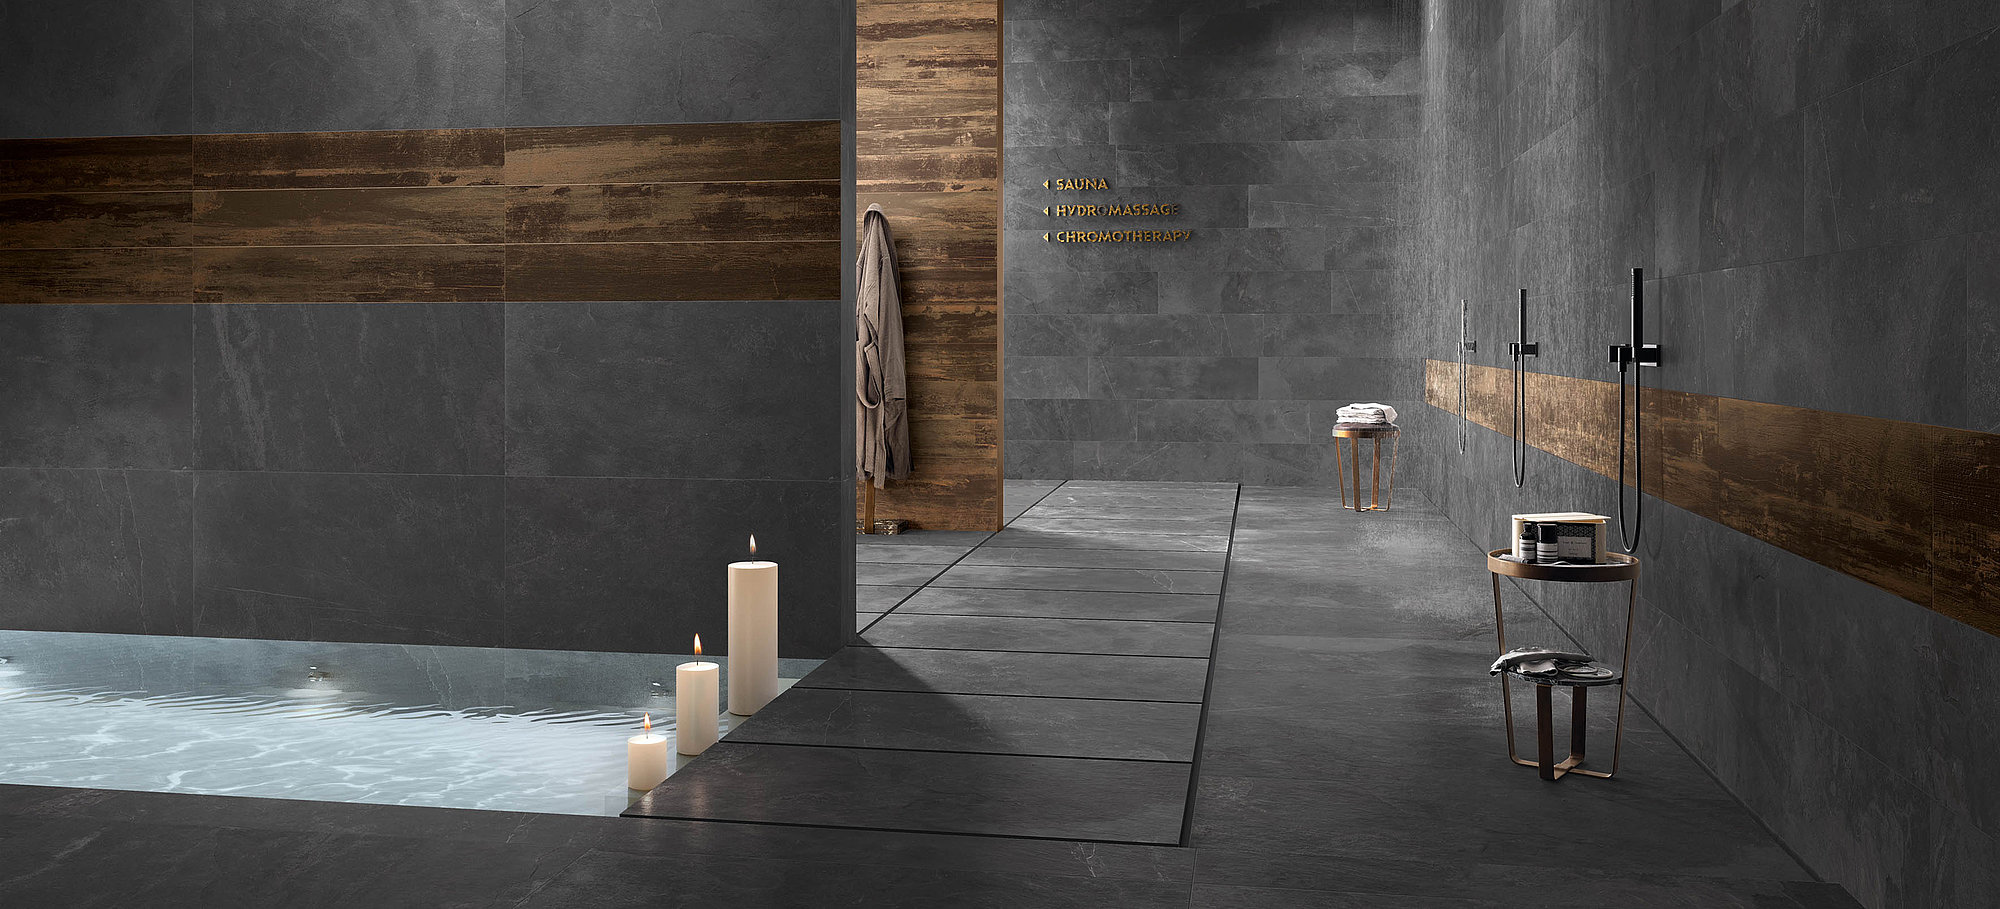 pool fliesen von dolomite tiles ihrem fliesenhandel in meran. Black Bedroom Furniture Sets. Home Design Ideas